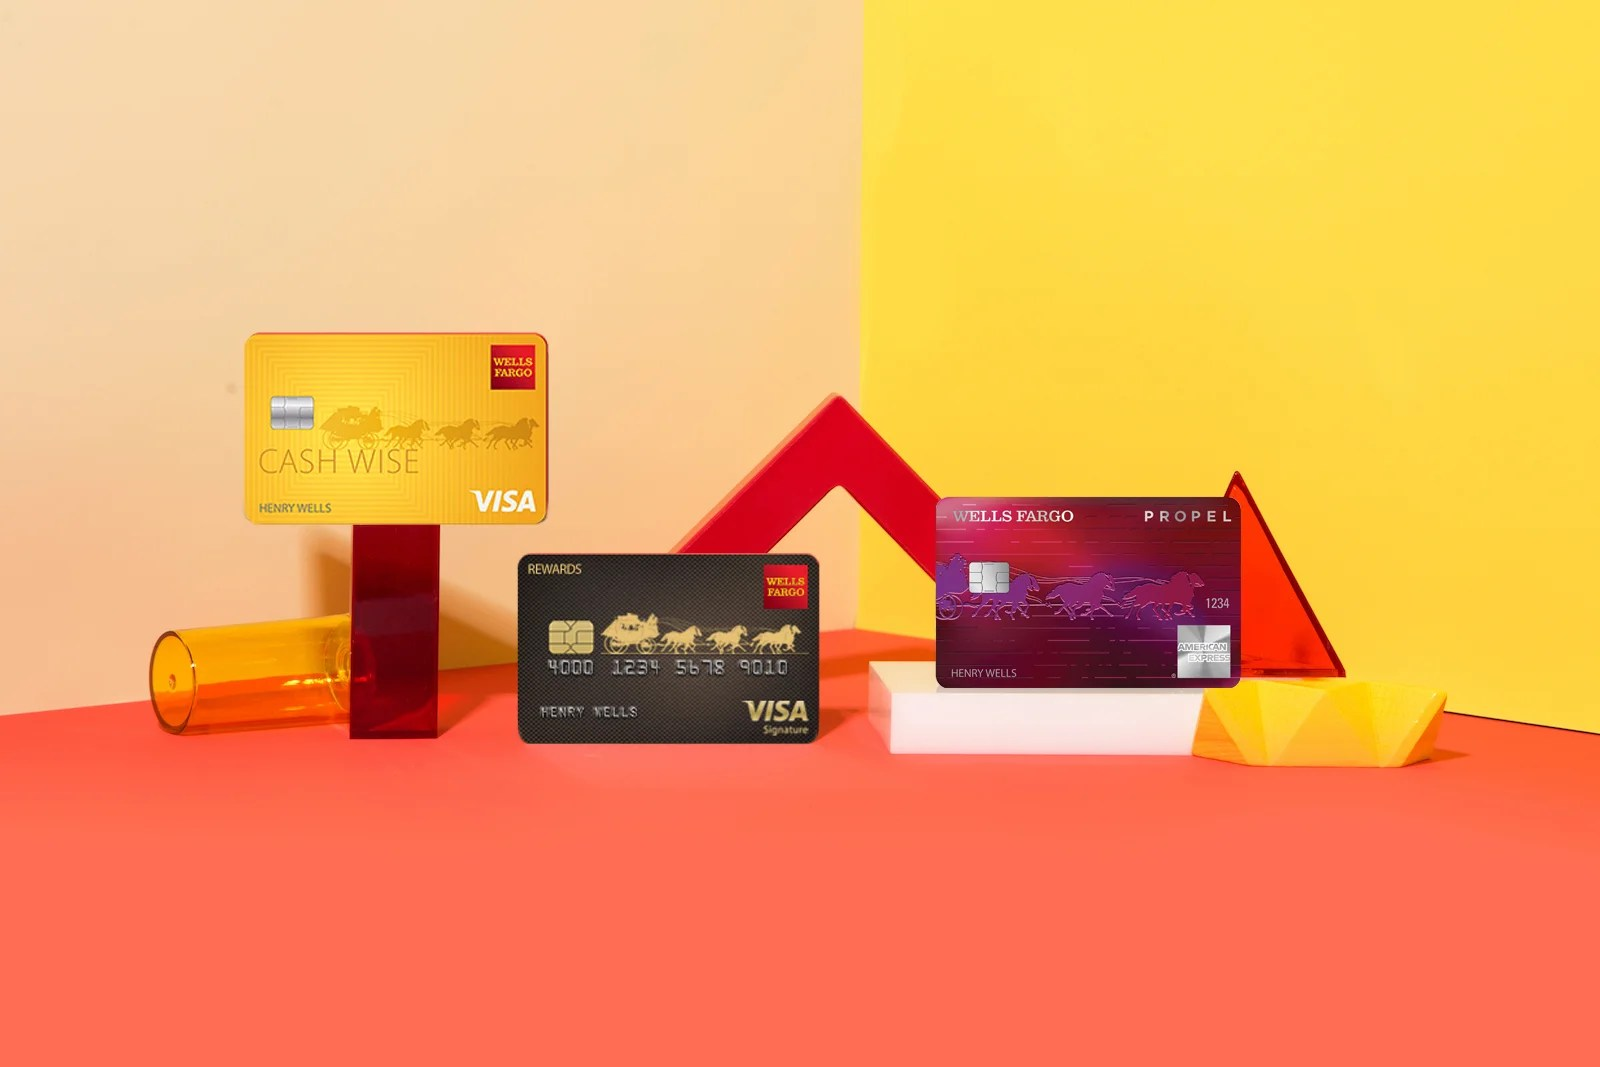 Best Wells Fargo credit cards of 14 - The Points Guy